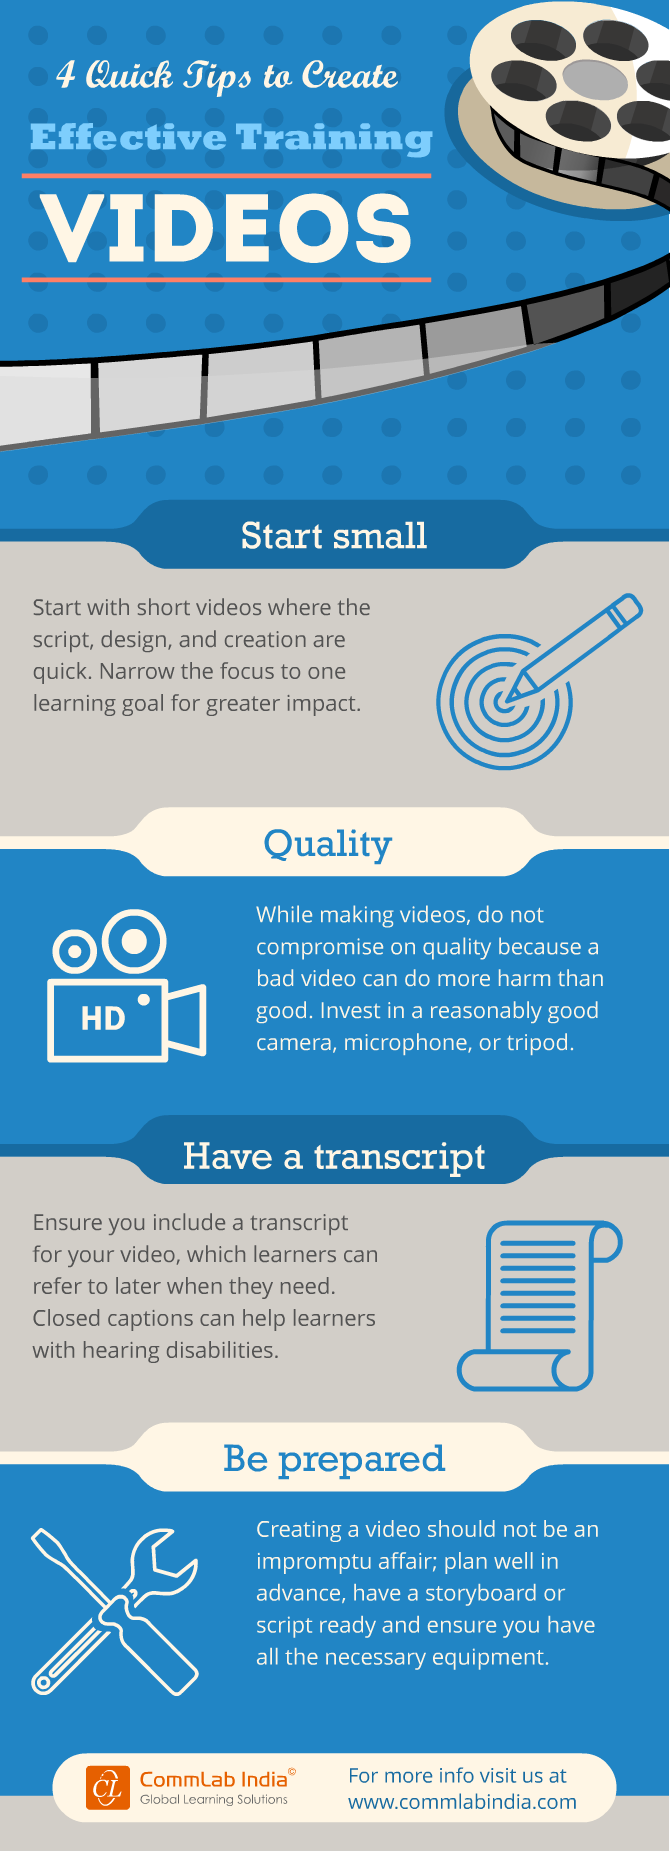 4 Quick Tips to Create Effective Training Videos [Infographic]